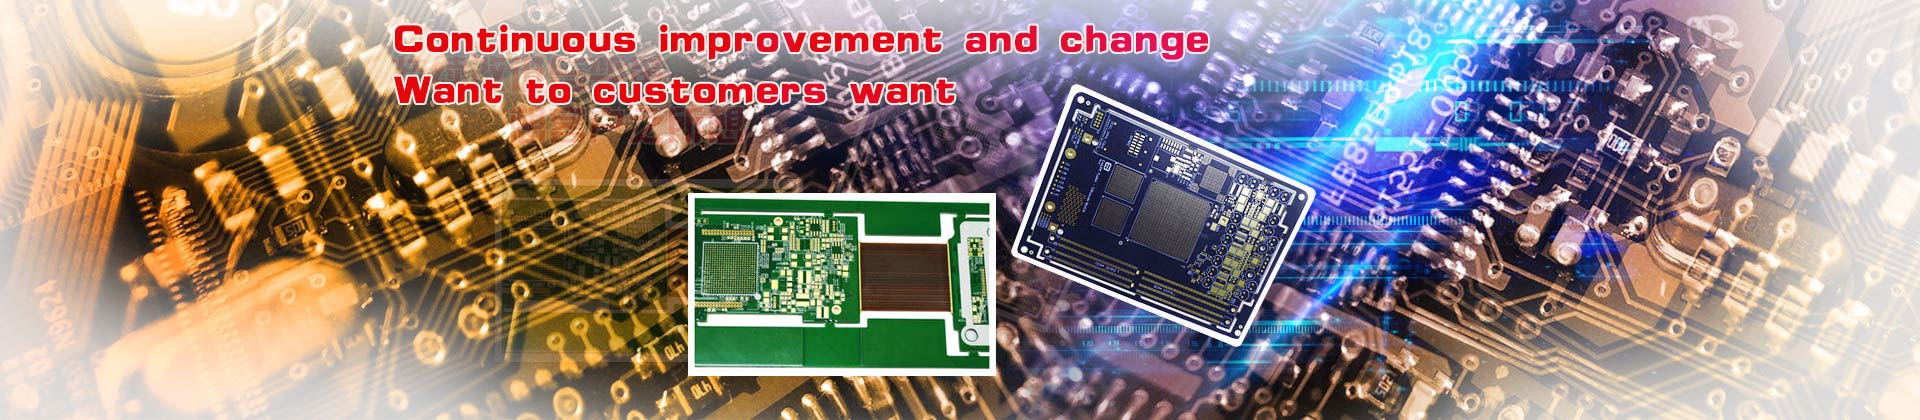 Hihong Technology Coltd Pcb Manufacturer Manufacturing Printed Rigidflex Circuit Boards Osp Lead Free Board Contact Us